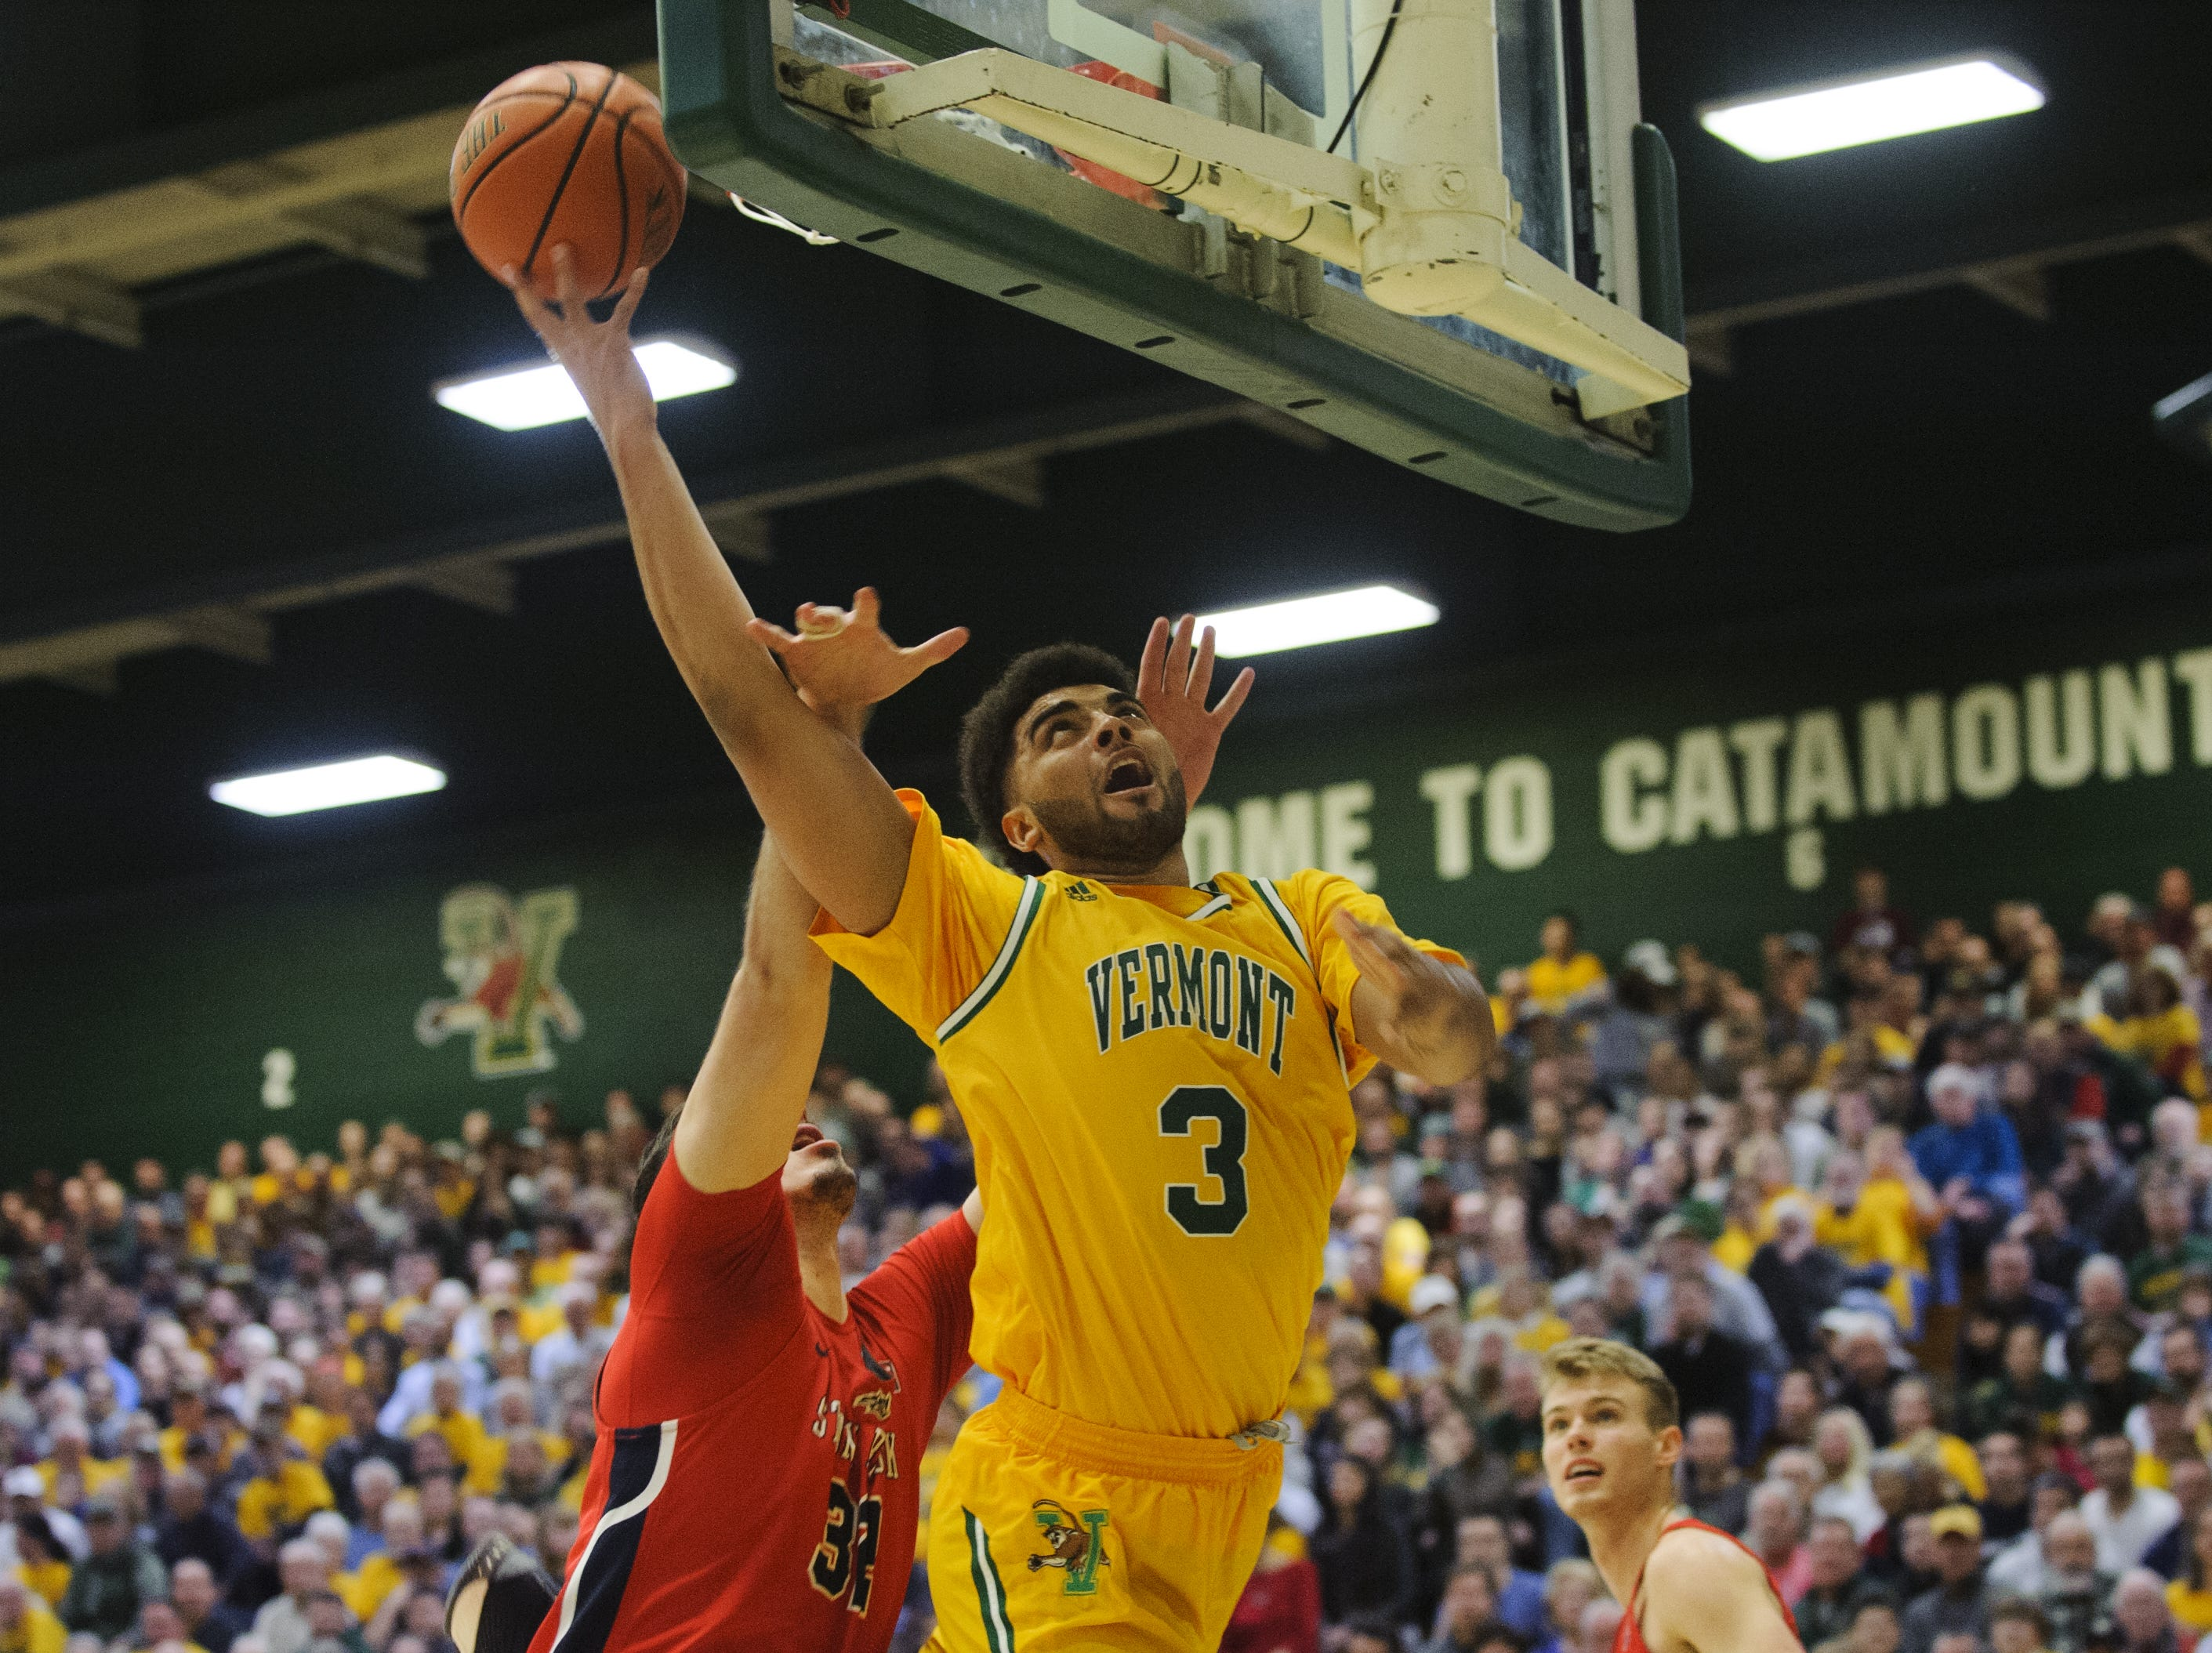 Vermont's Anthony Lamb (3) leaps for a lay up during the America East men's basketball semifinal game between the Stony Brook Seawolves and the Vermont Catamounts at Patrick Gym on Tuesday night March 6, 2018 in Burlington.